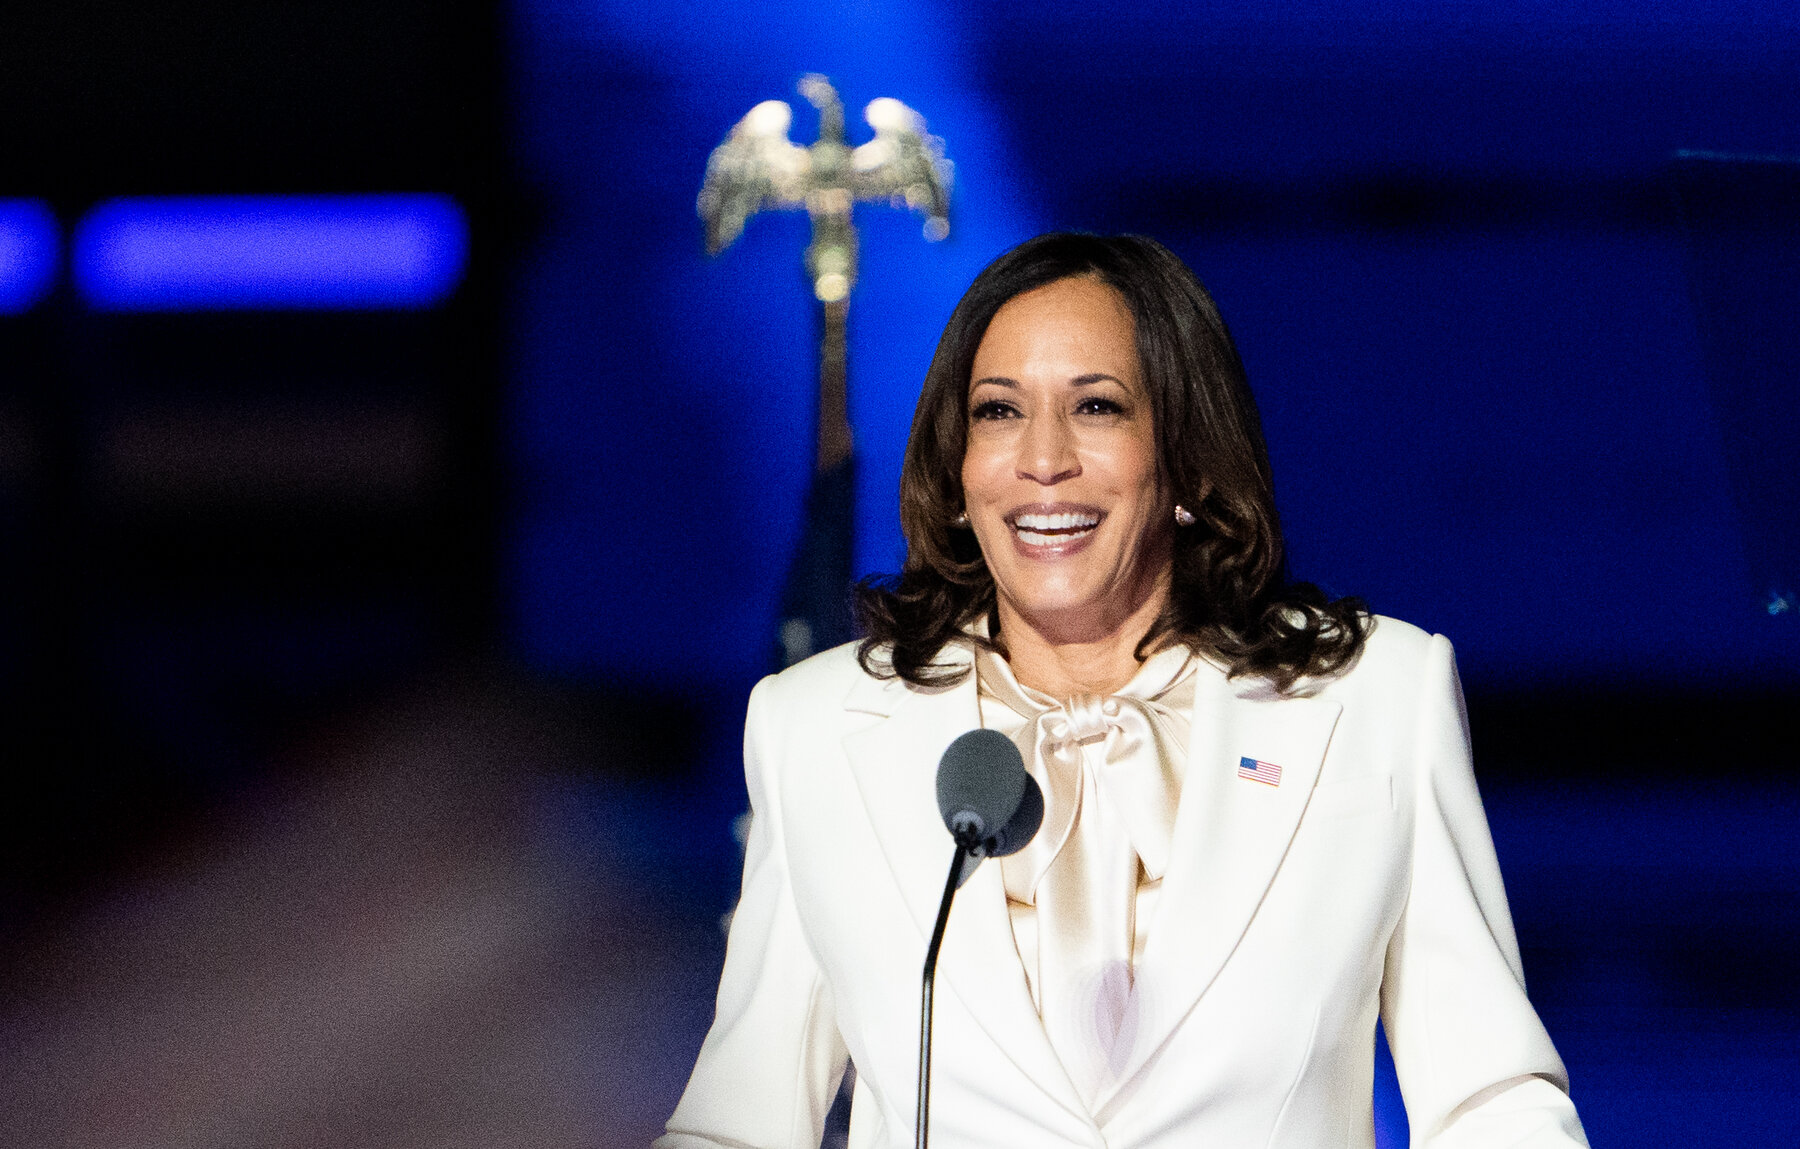 KAMALA HARRIS: Makes history as the first woman of color